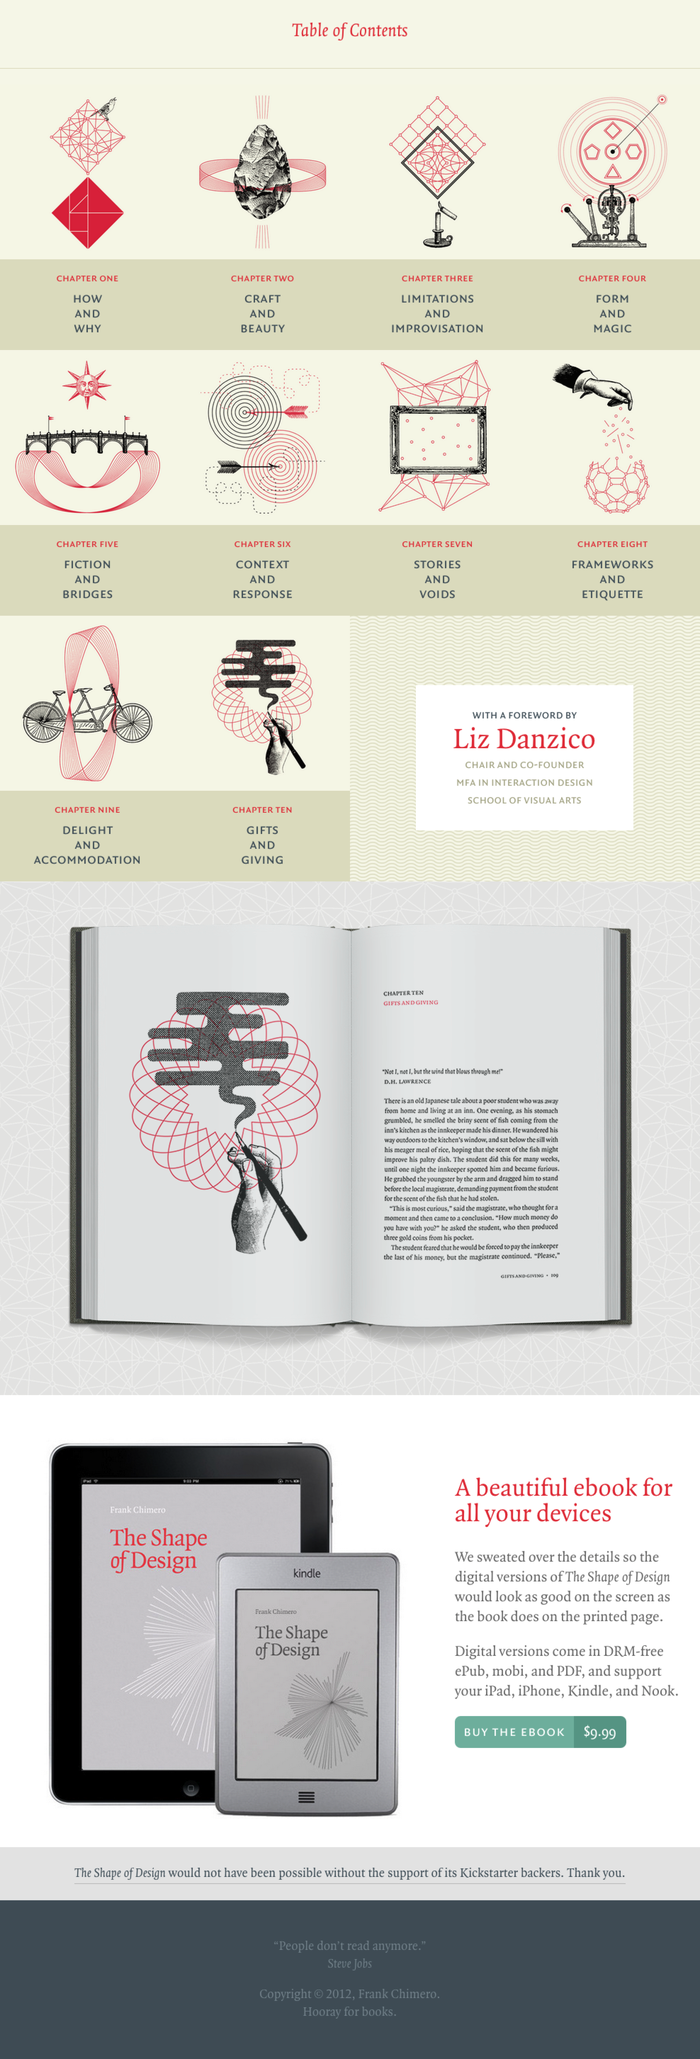 The Shape of Design website and online edition 3